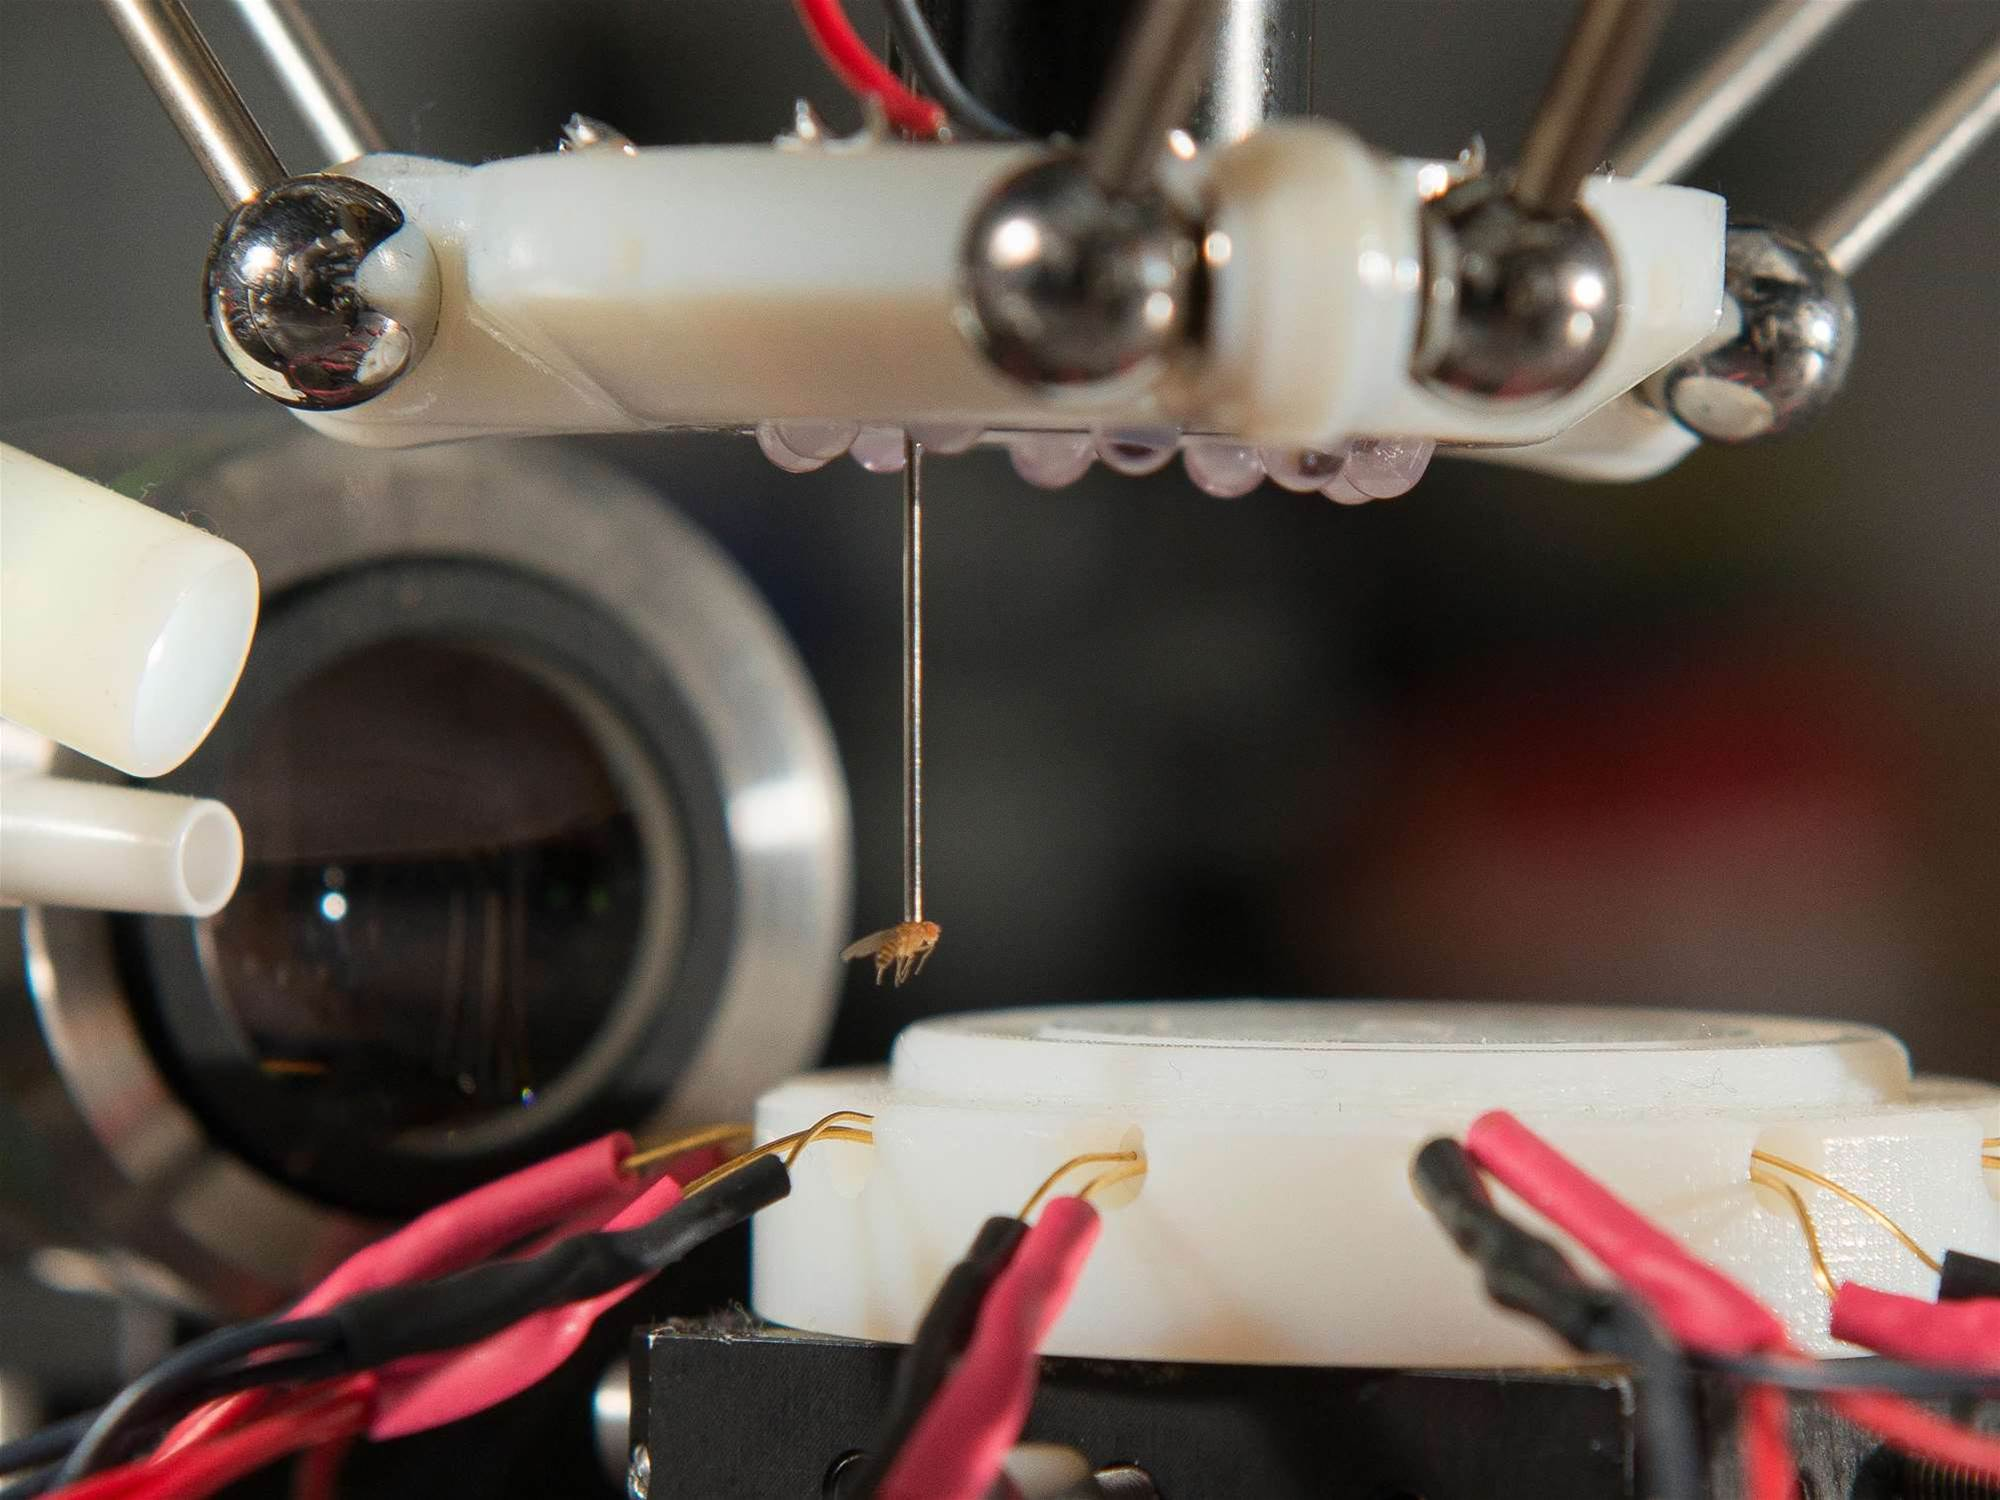 This Robot Can Suck Up Fruit Flies Like A UFO